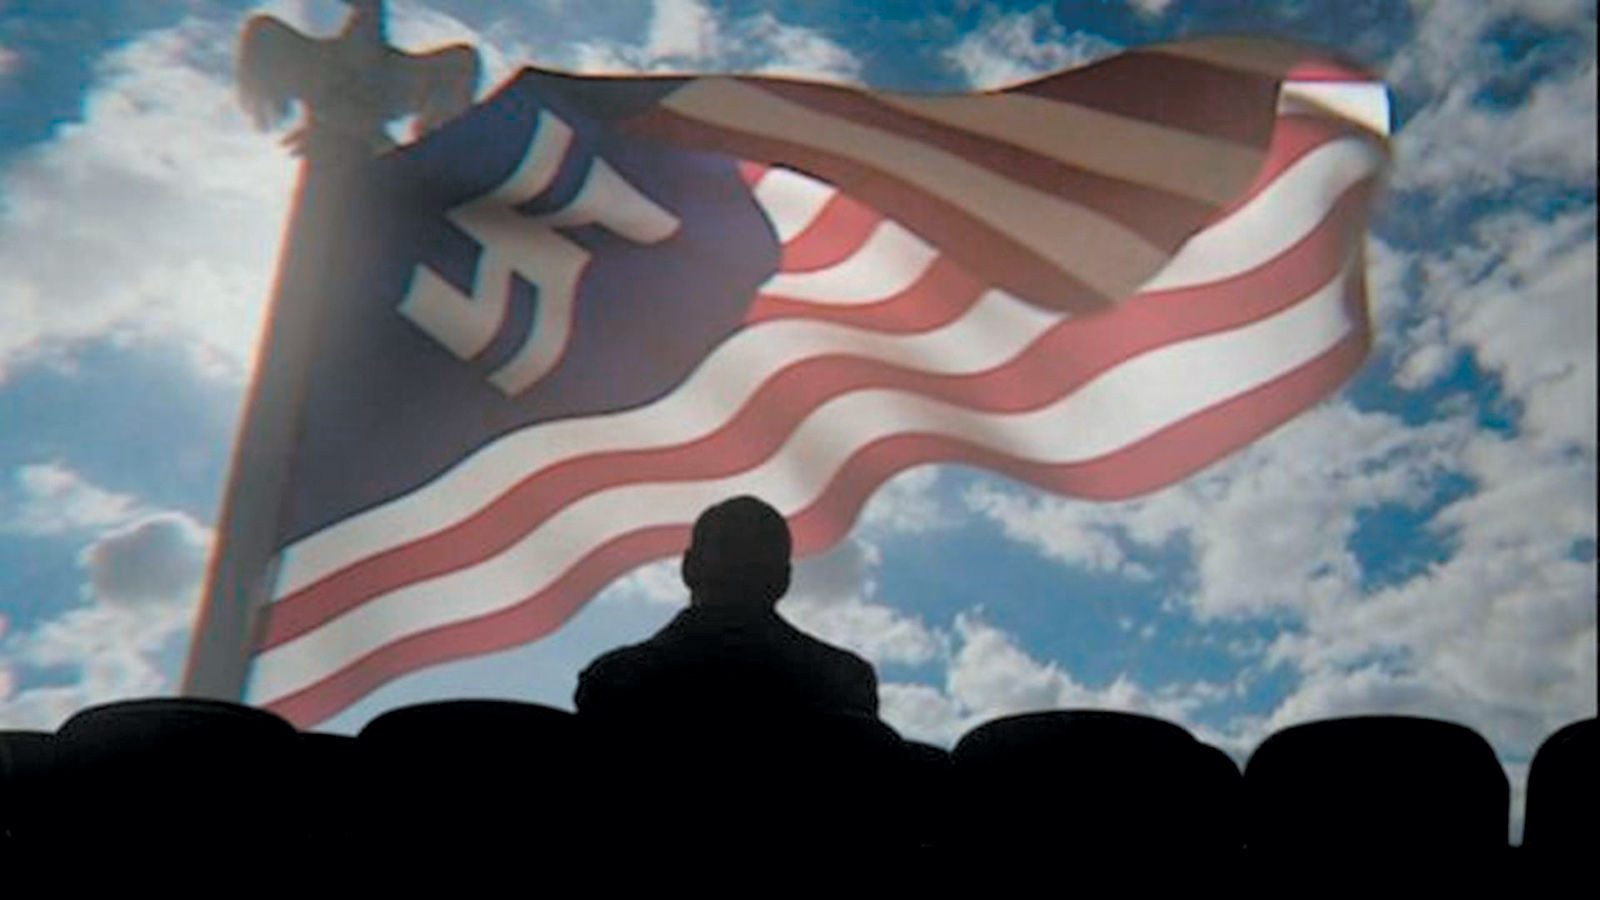 A propaganda newsreel for the Greater Nazi Reich in the first episode of The Man in the High Castle